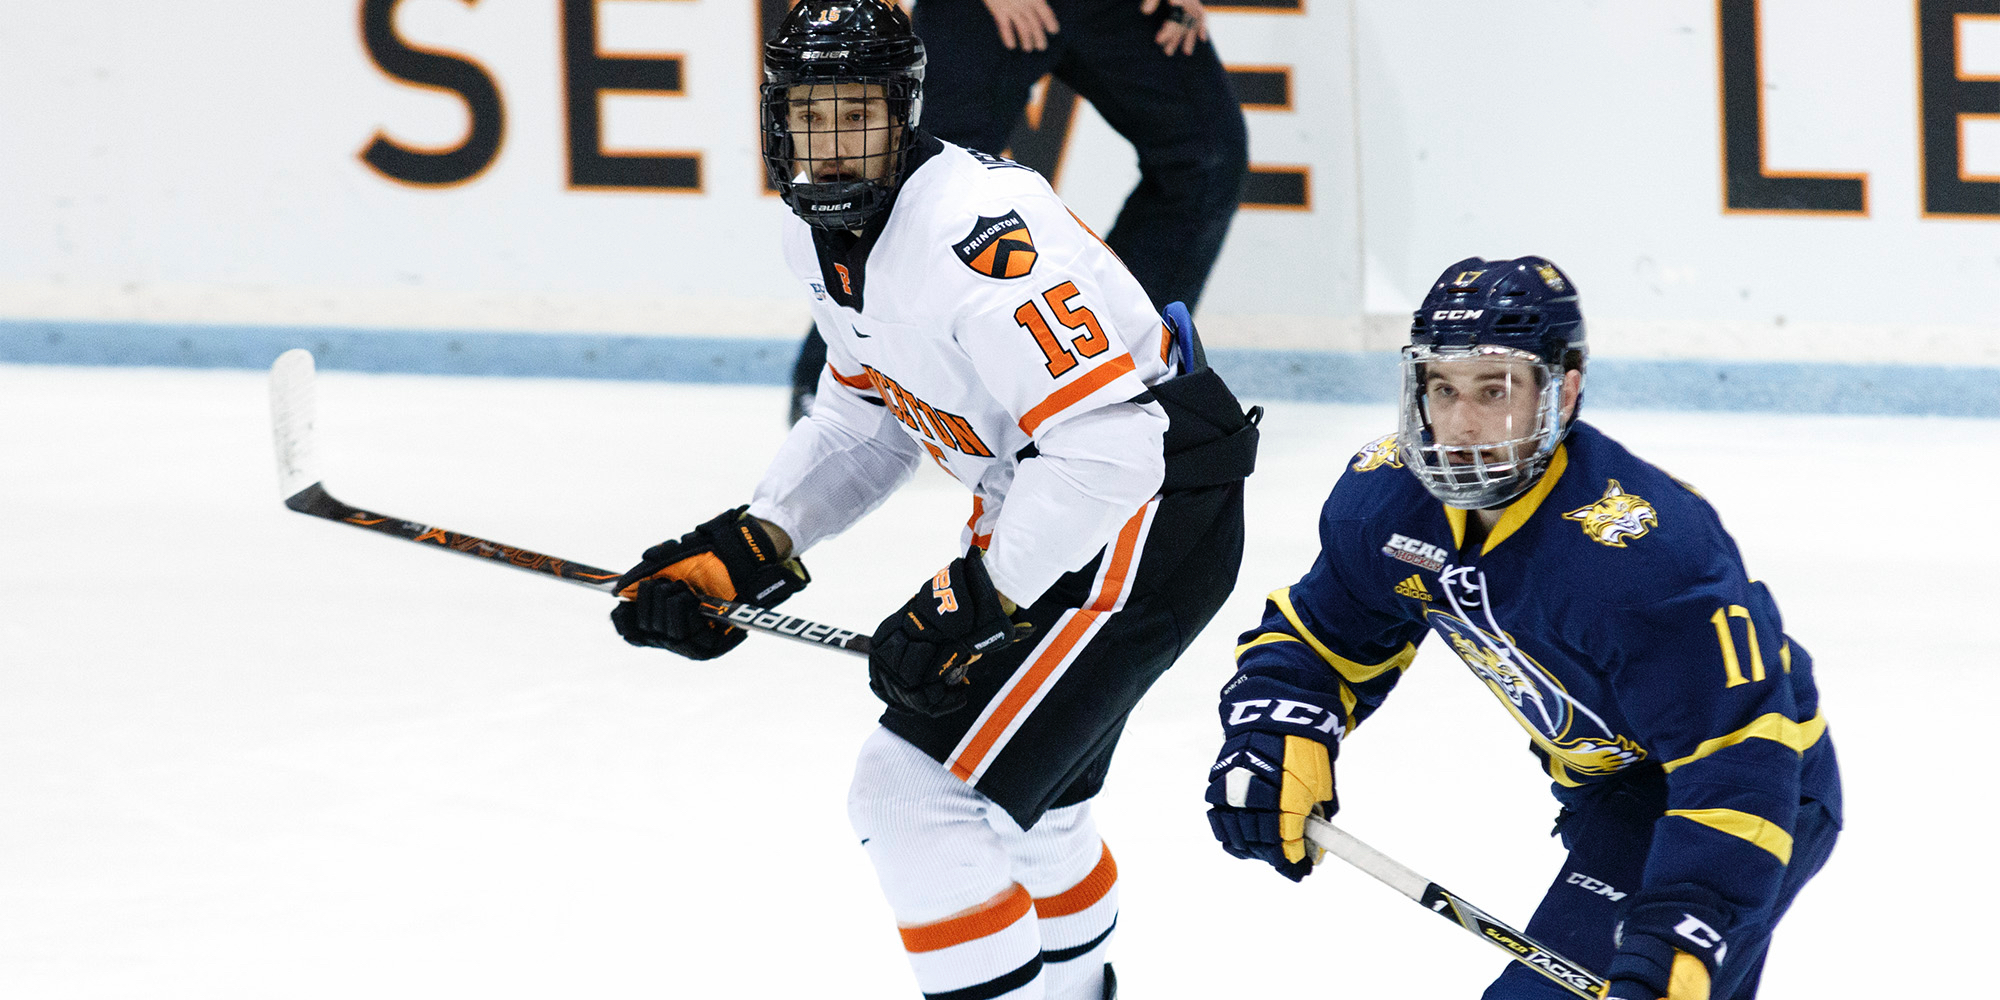 Princeton Wins at Quinnipiac and Leapfrogs in Standings